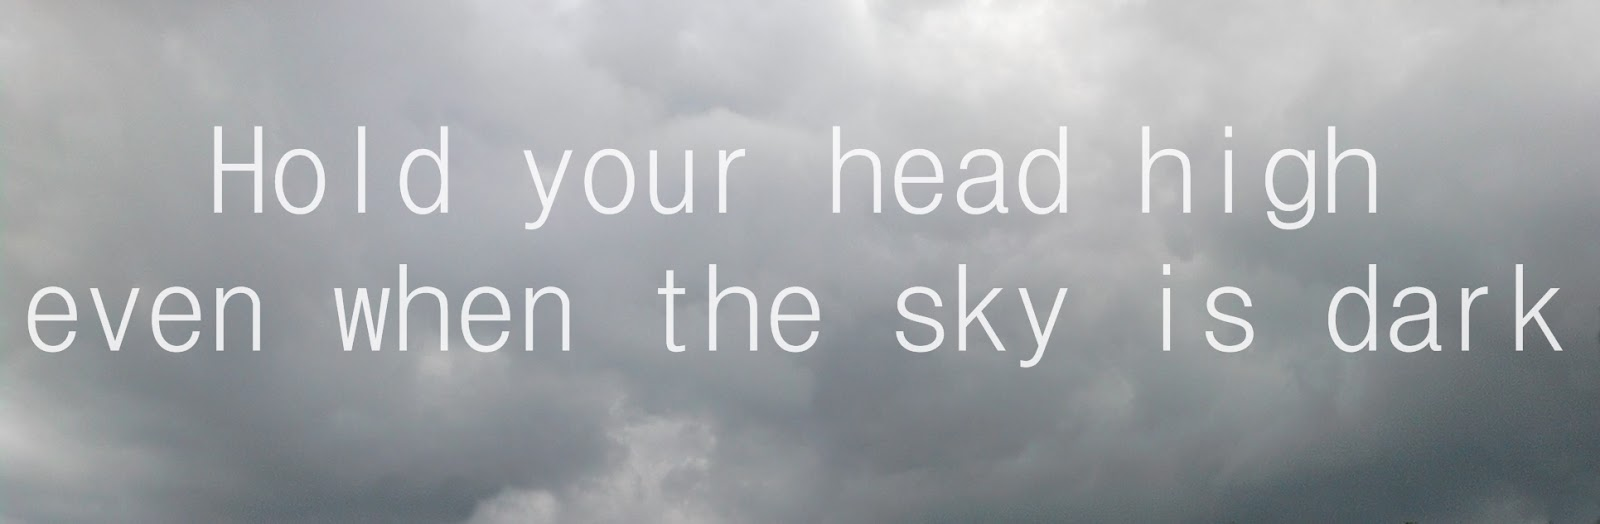 hold your head high